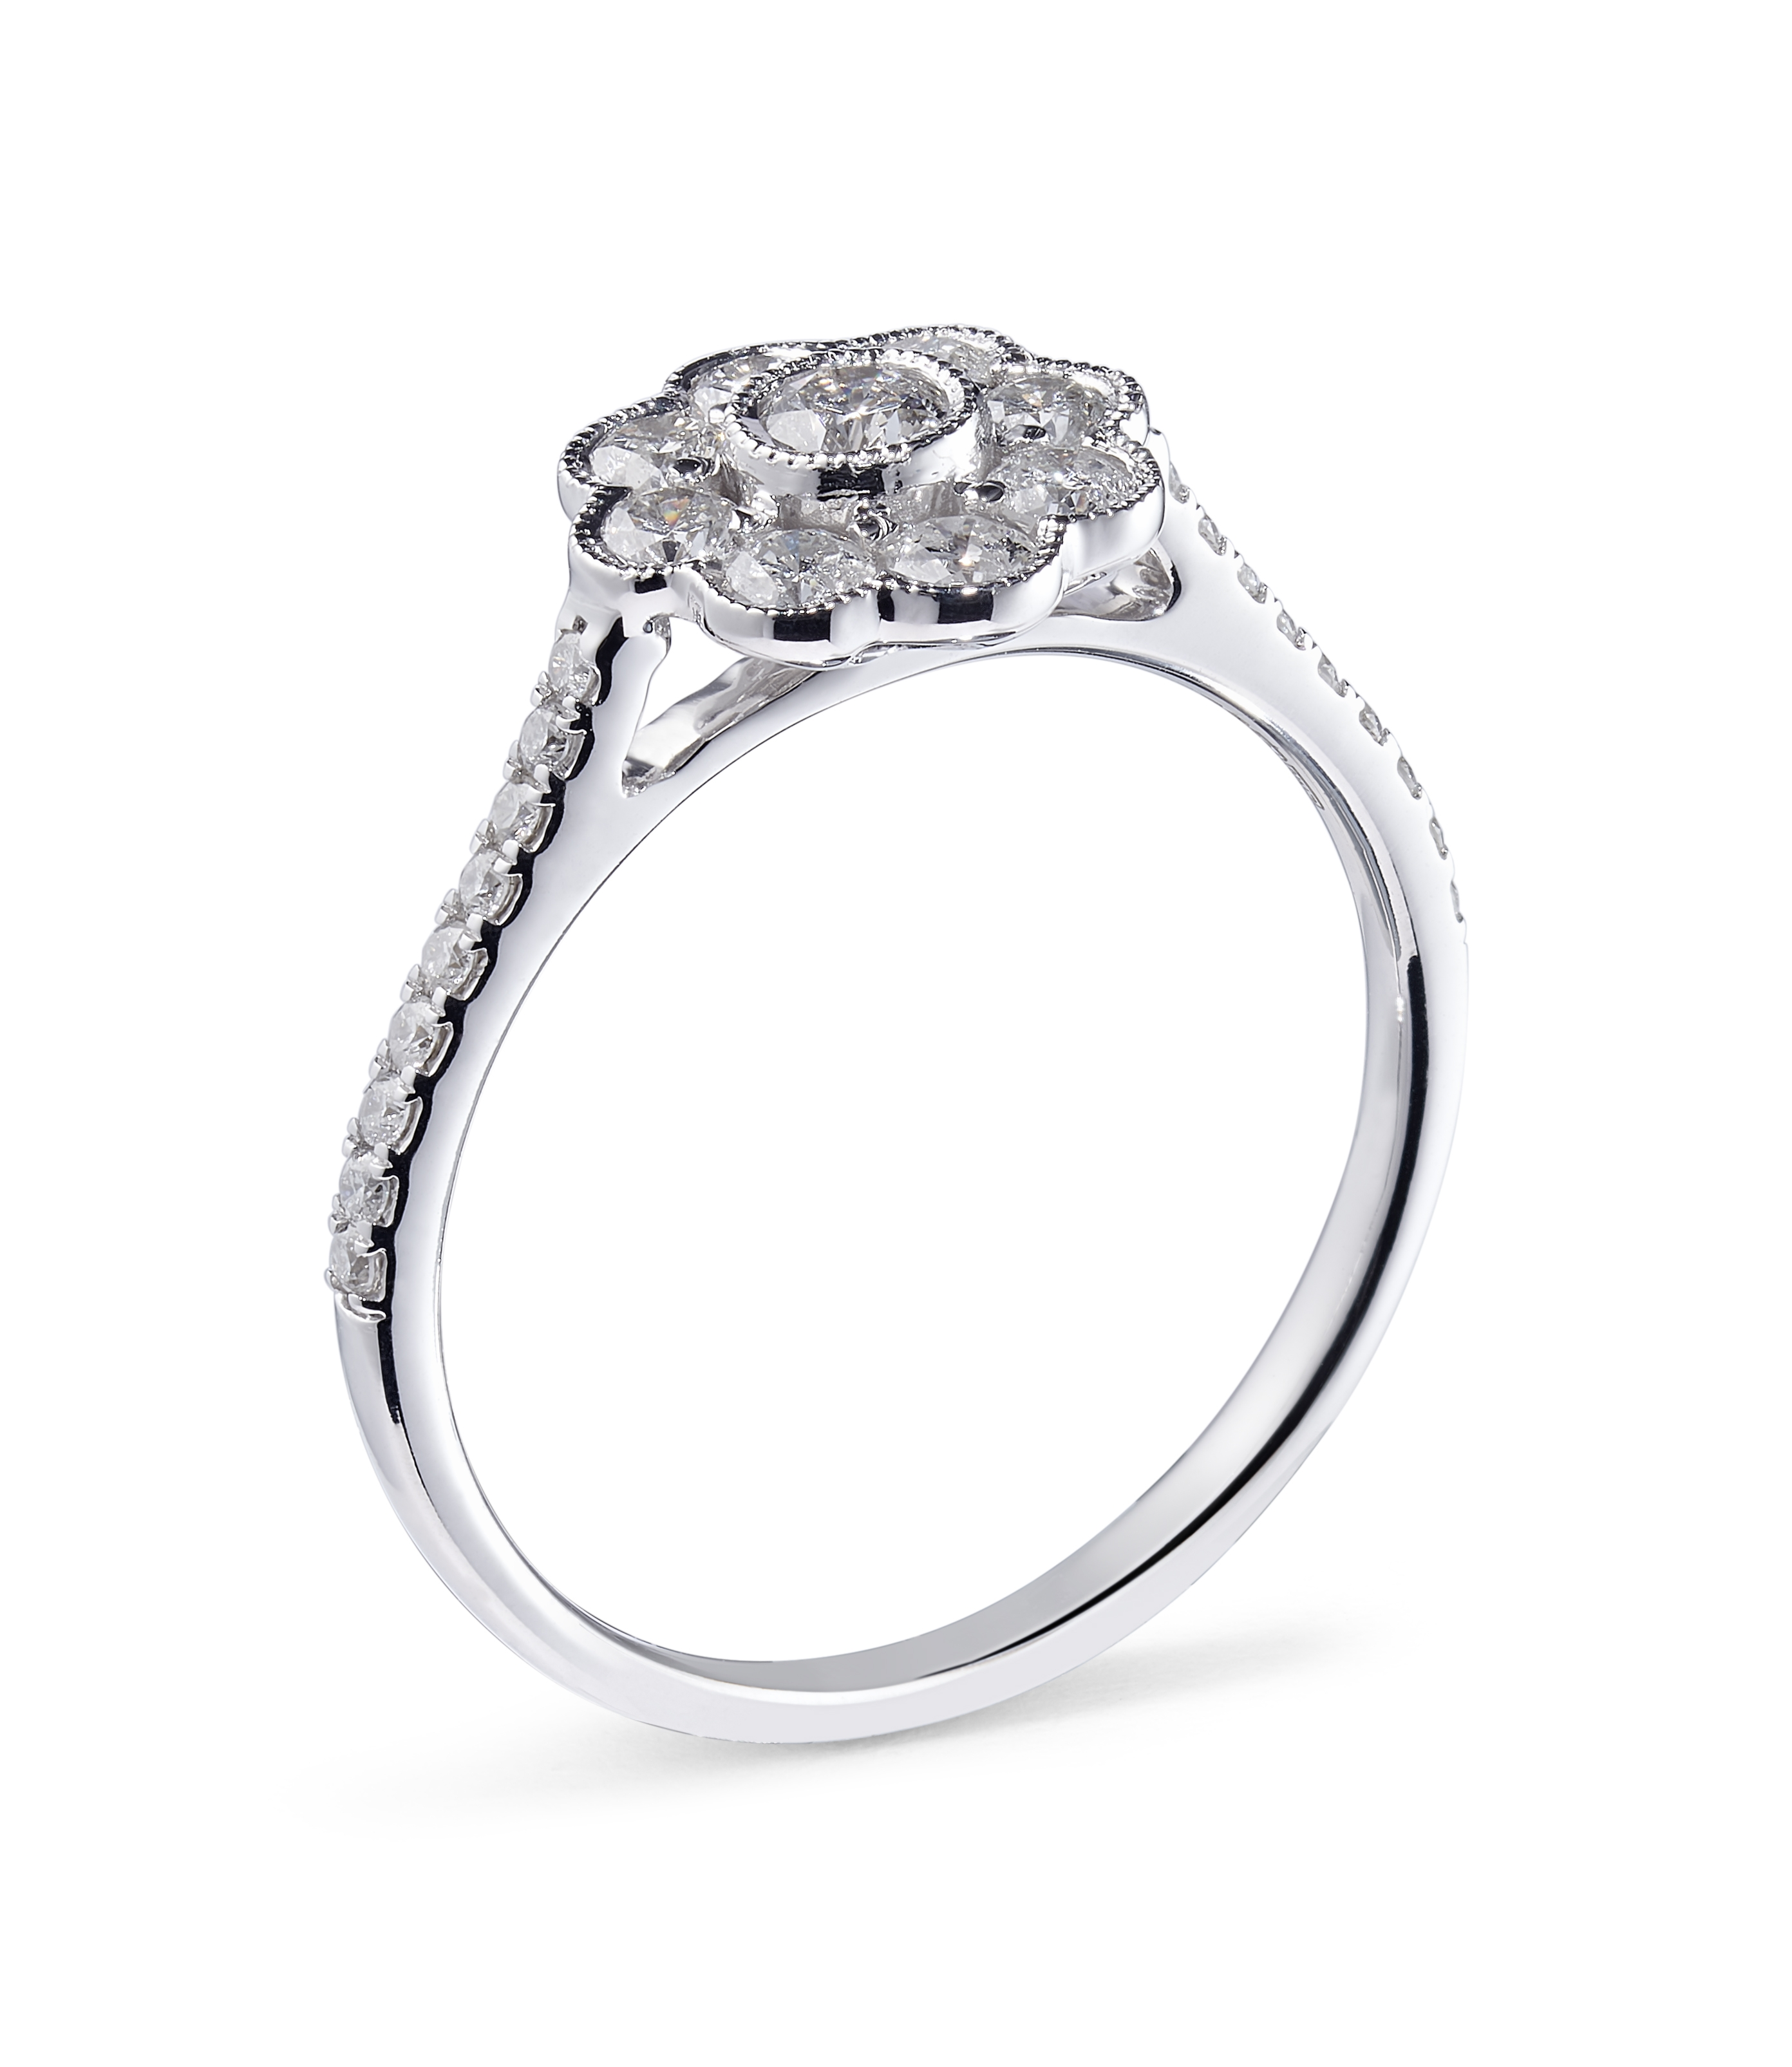 18ct White Gold Diamond Cluster Ring with Millgrain Detail